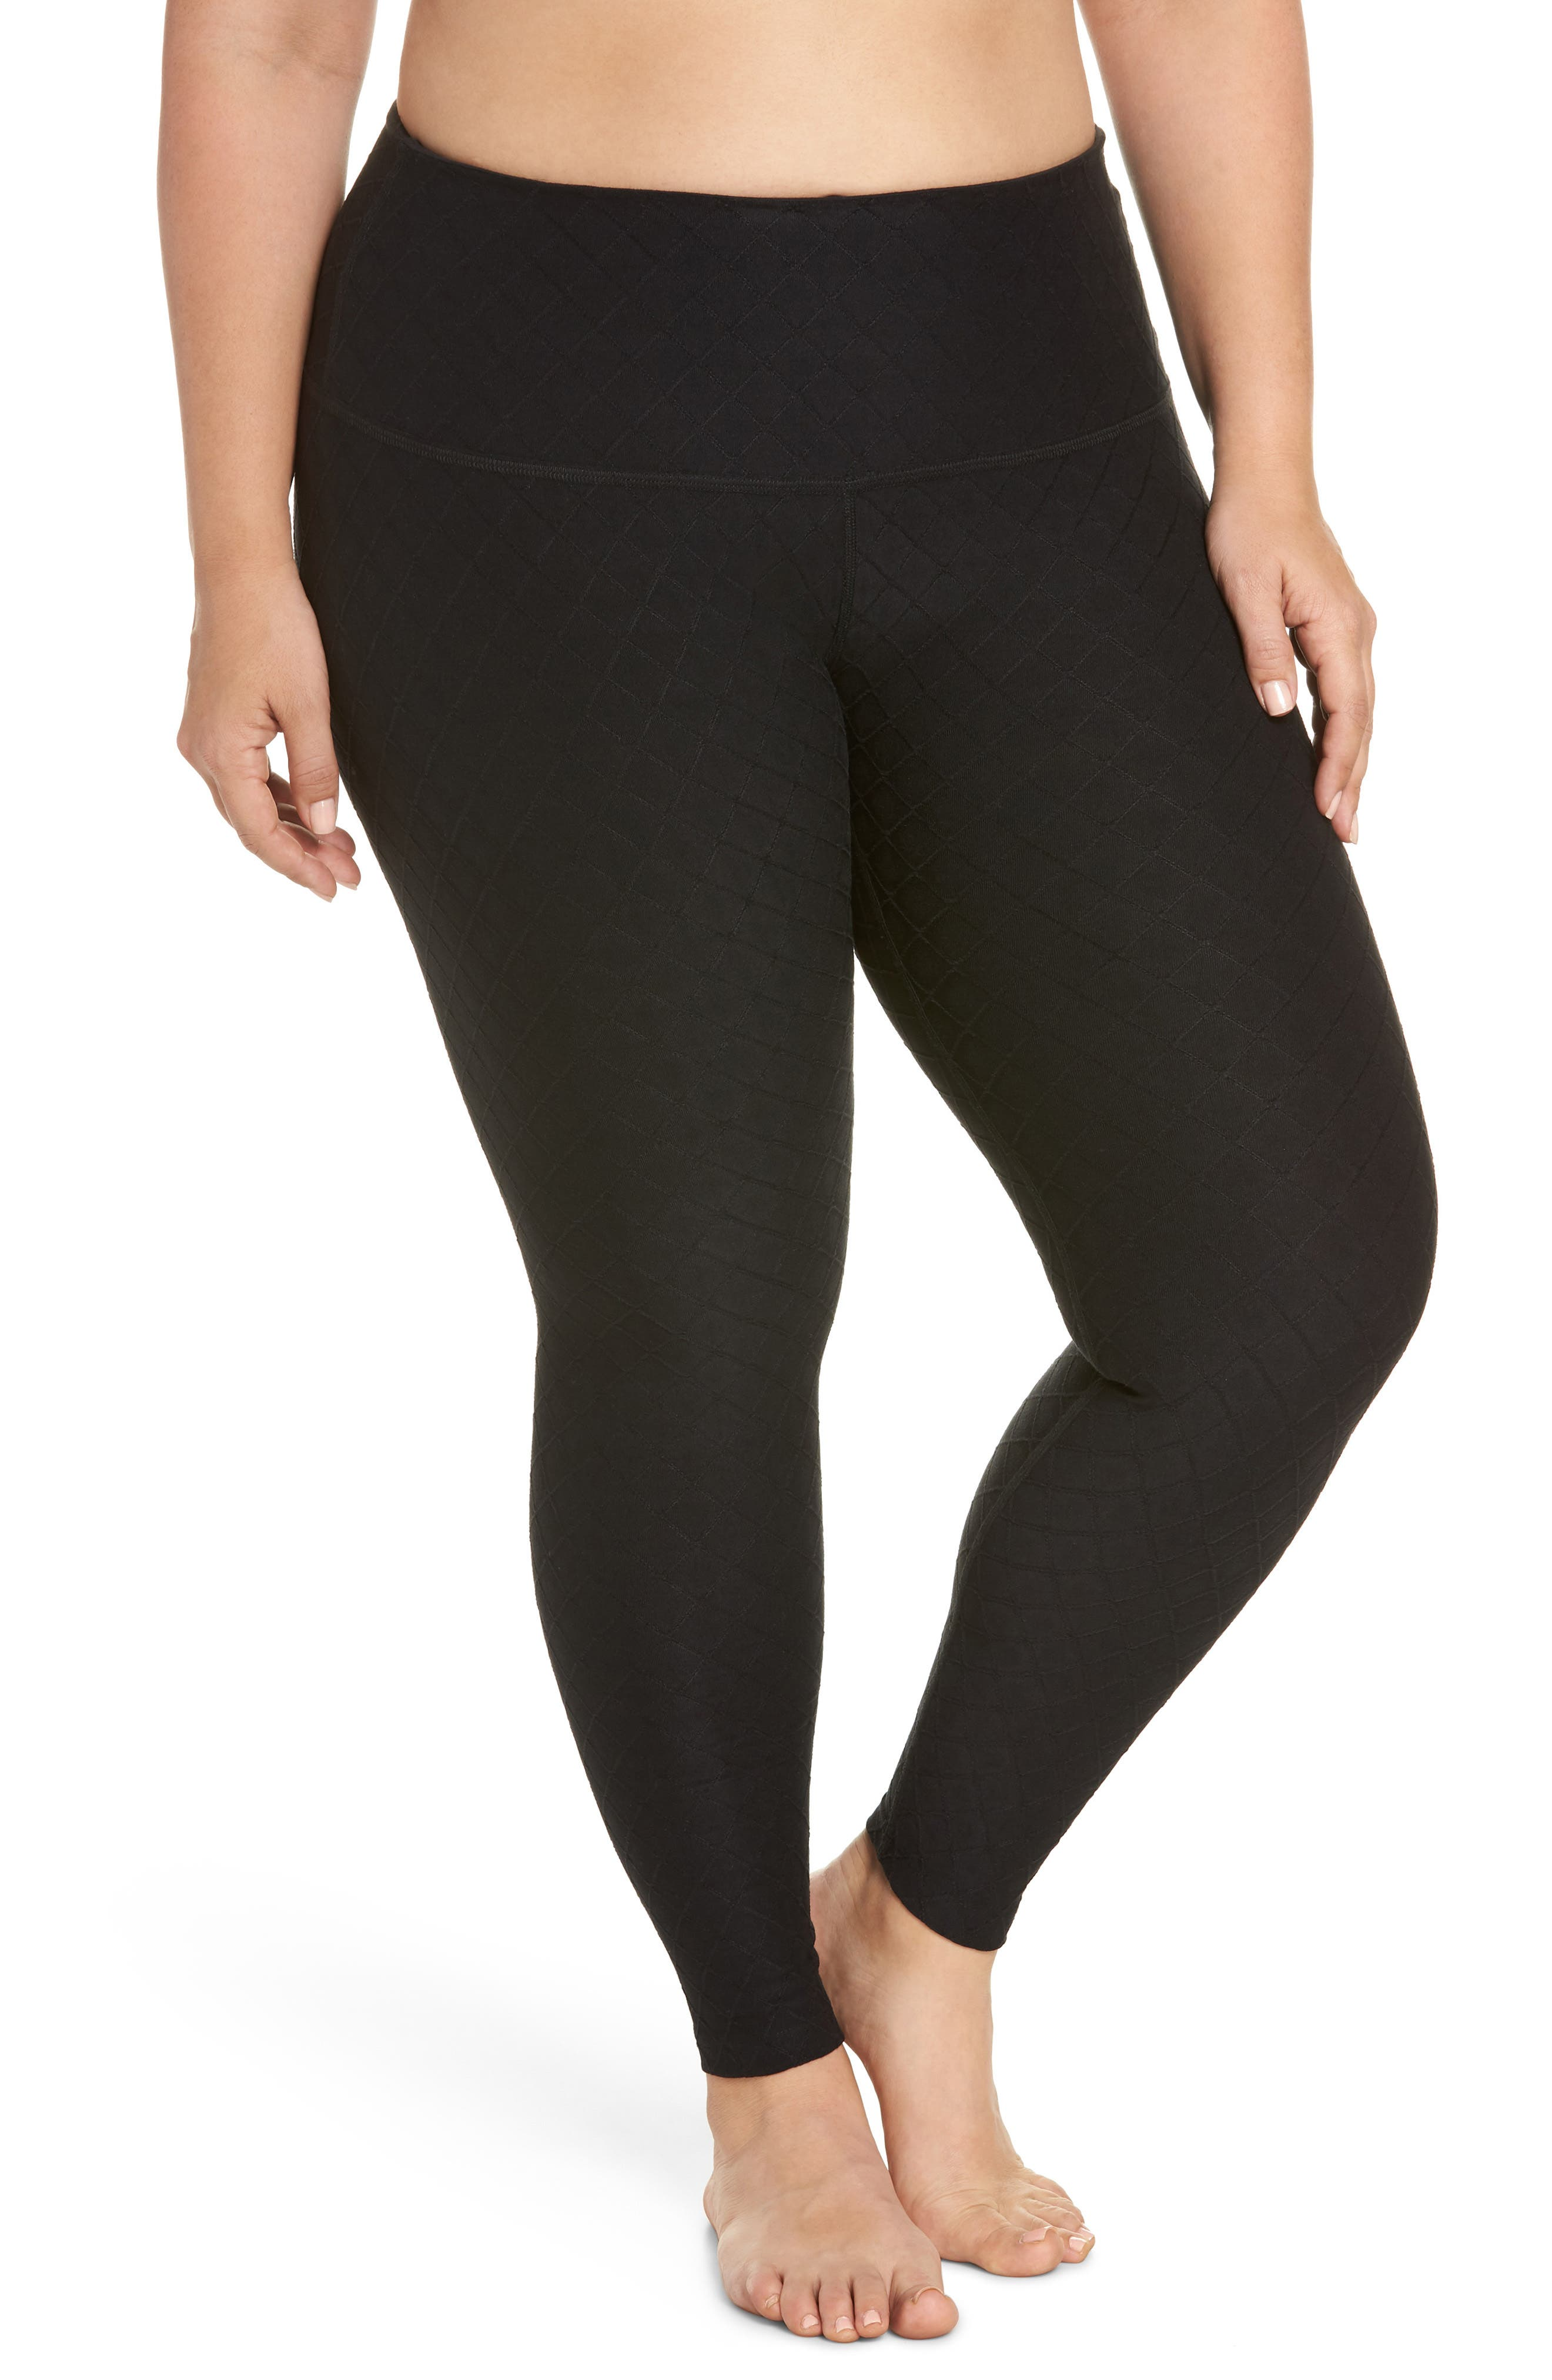 Can't Quit You High Waist Leggings,                         Main,                         color, 013